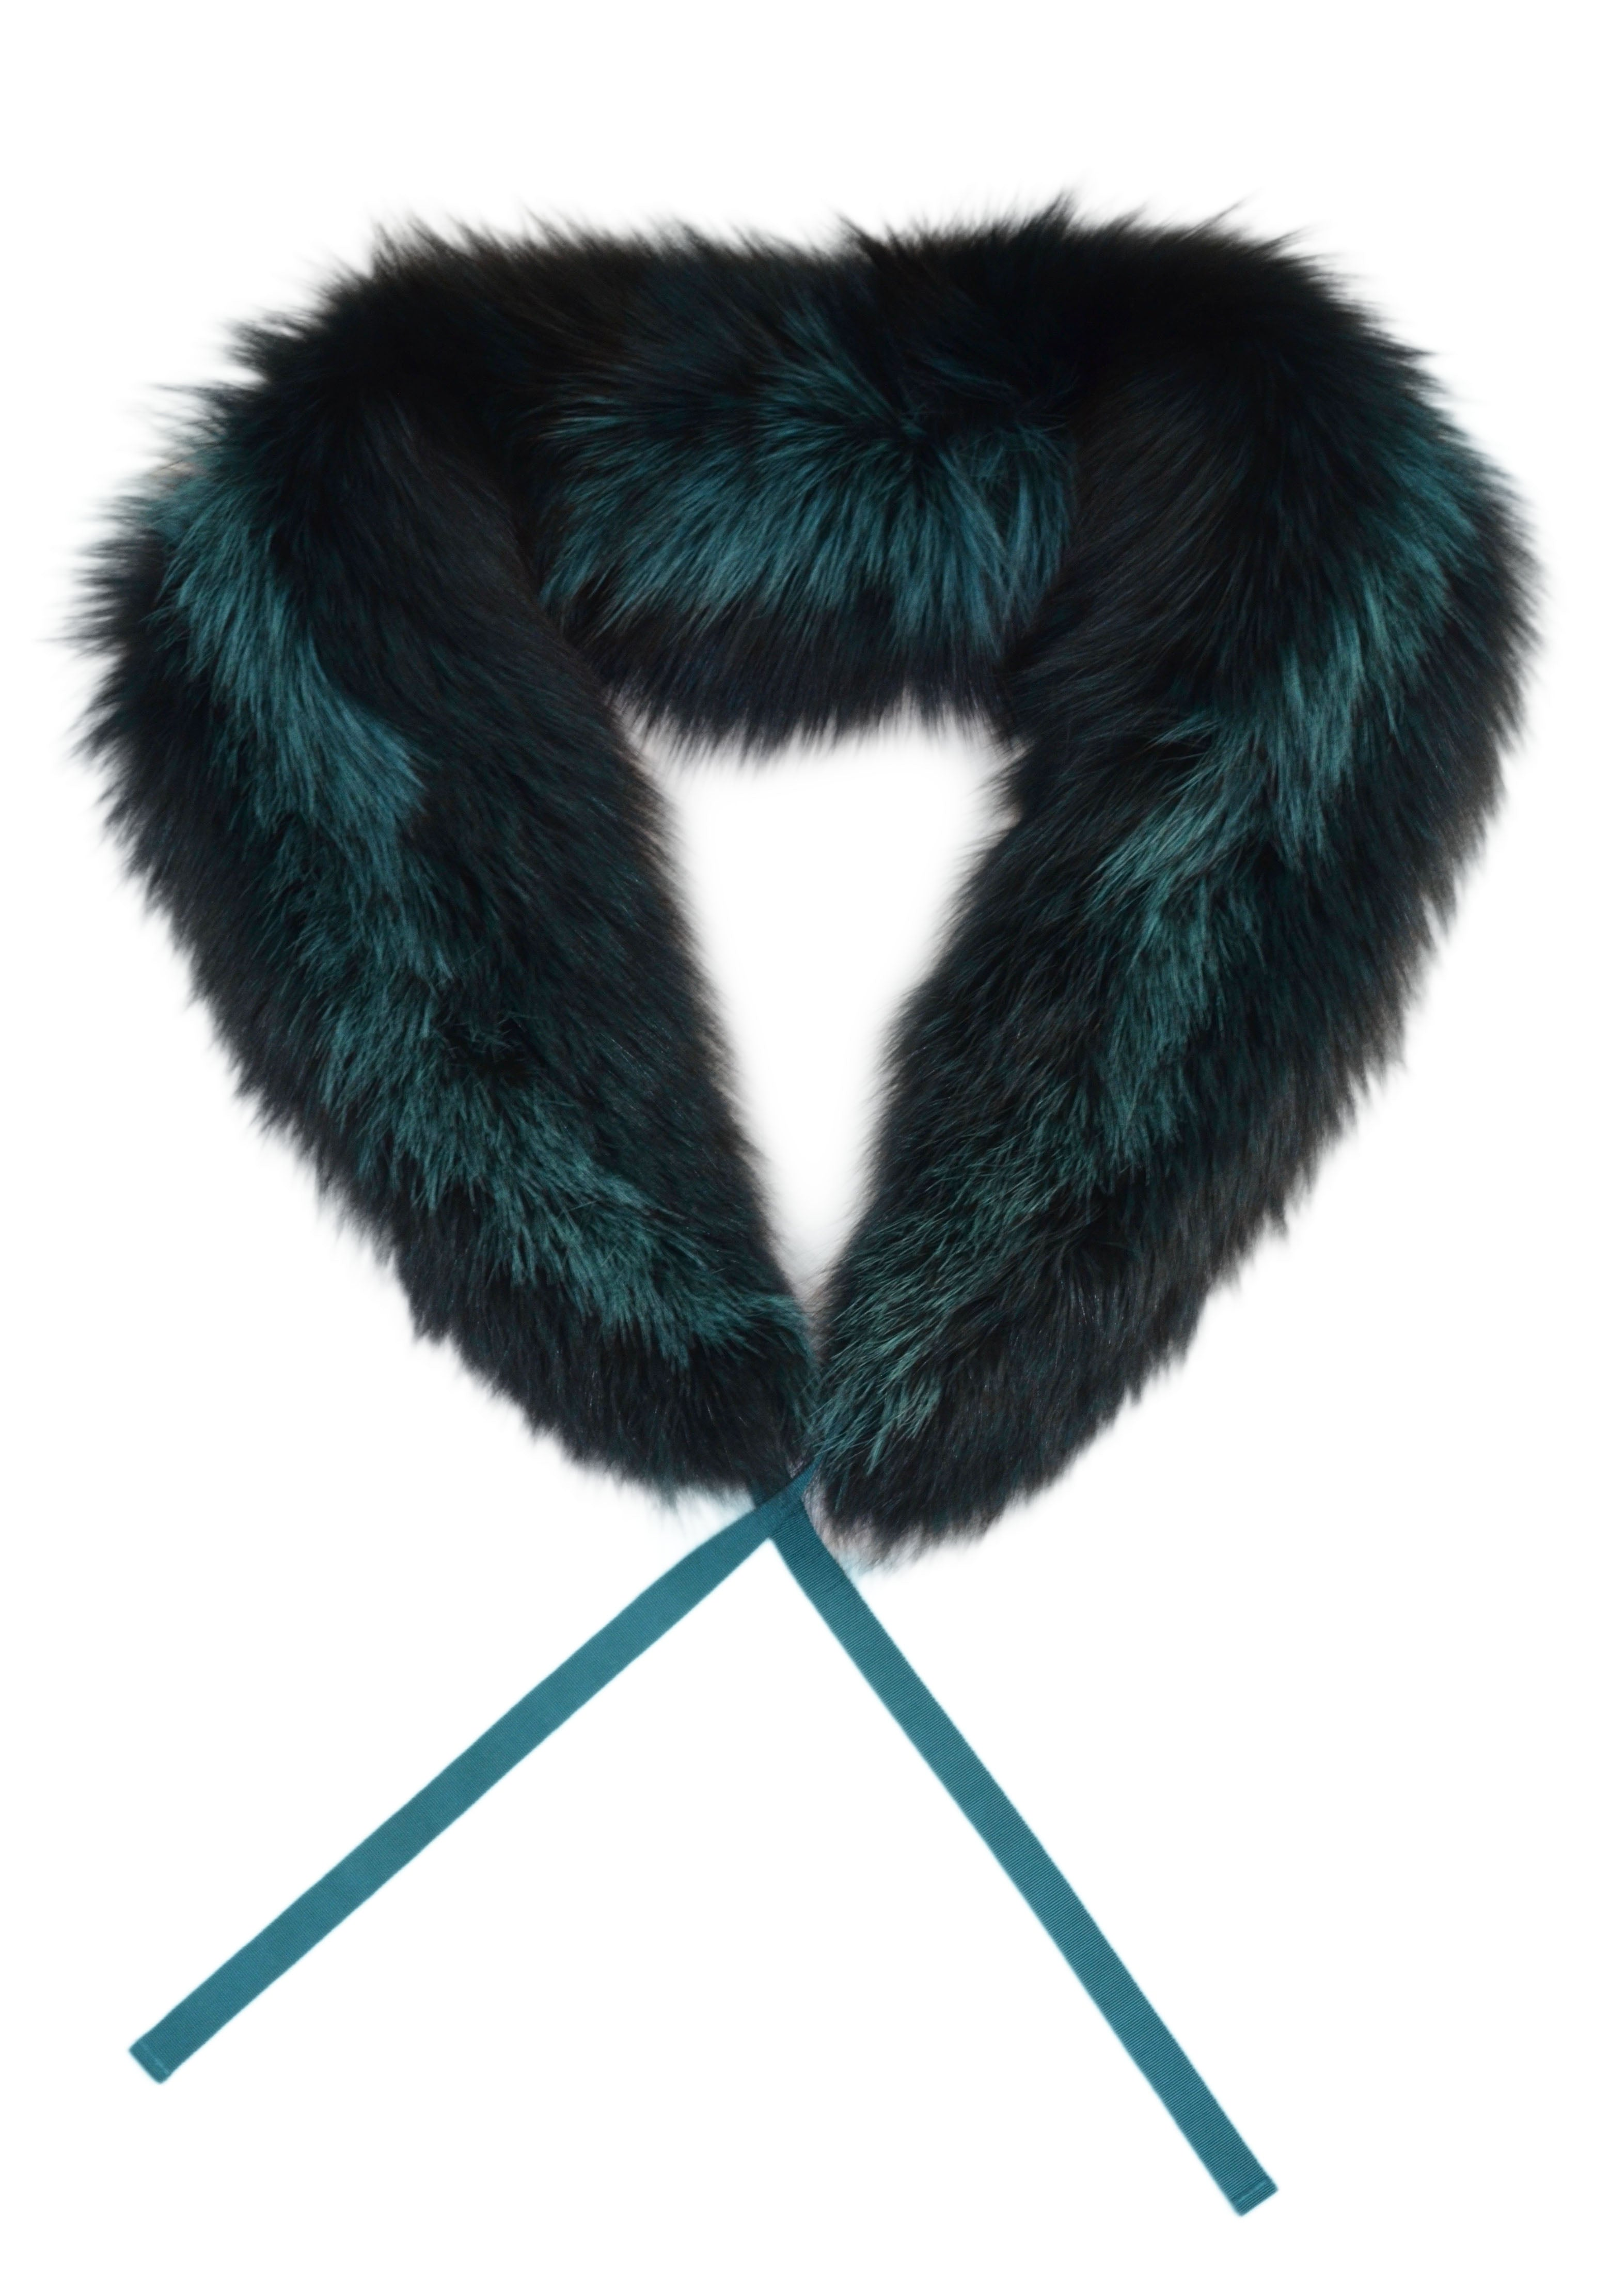 Fox Stripe Collar with Gross Grain, Teal and Black